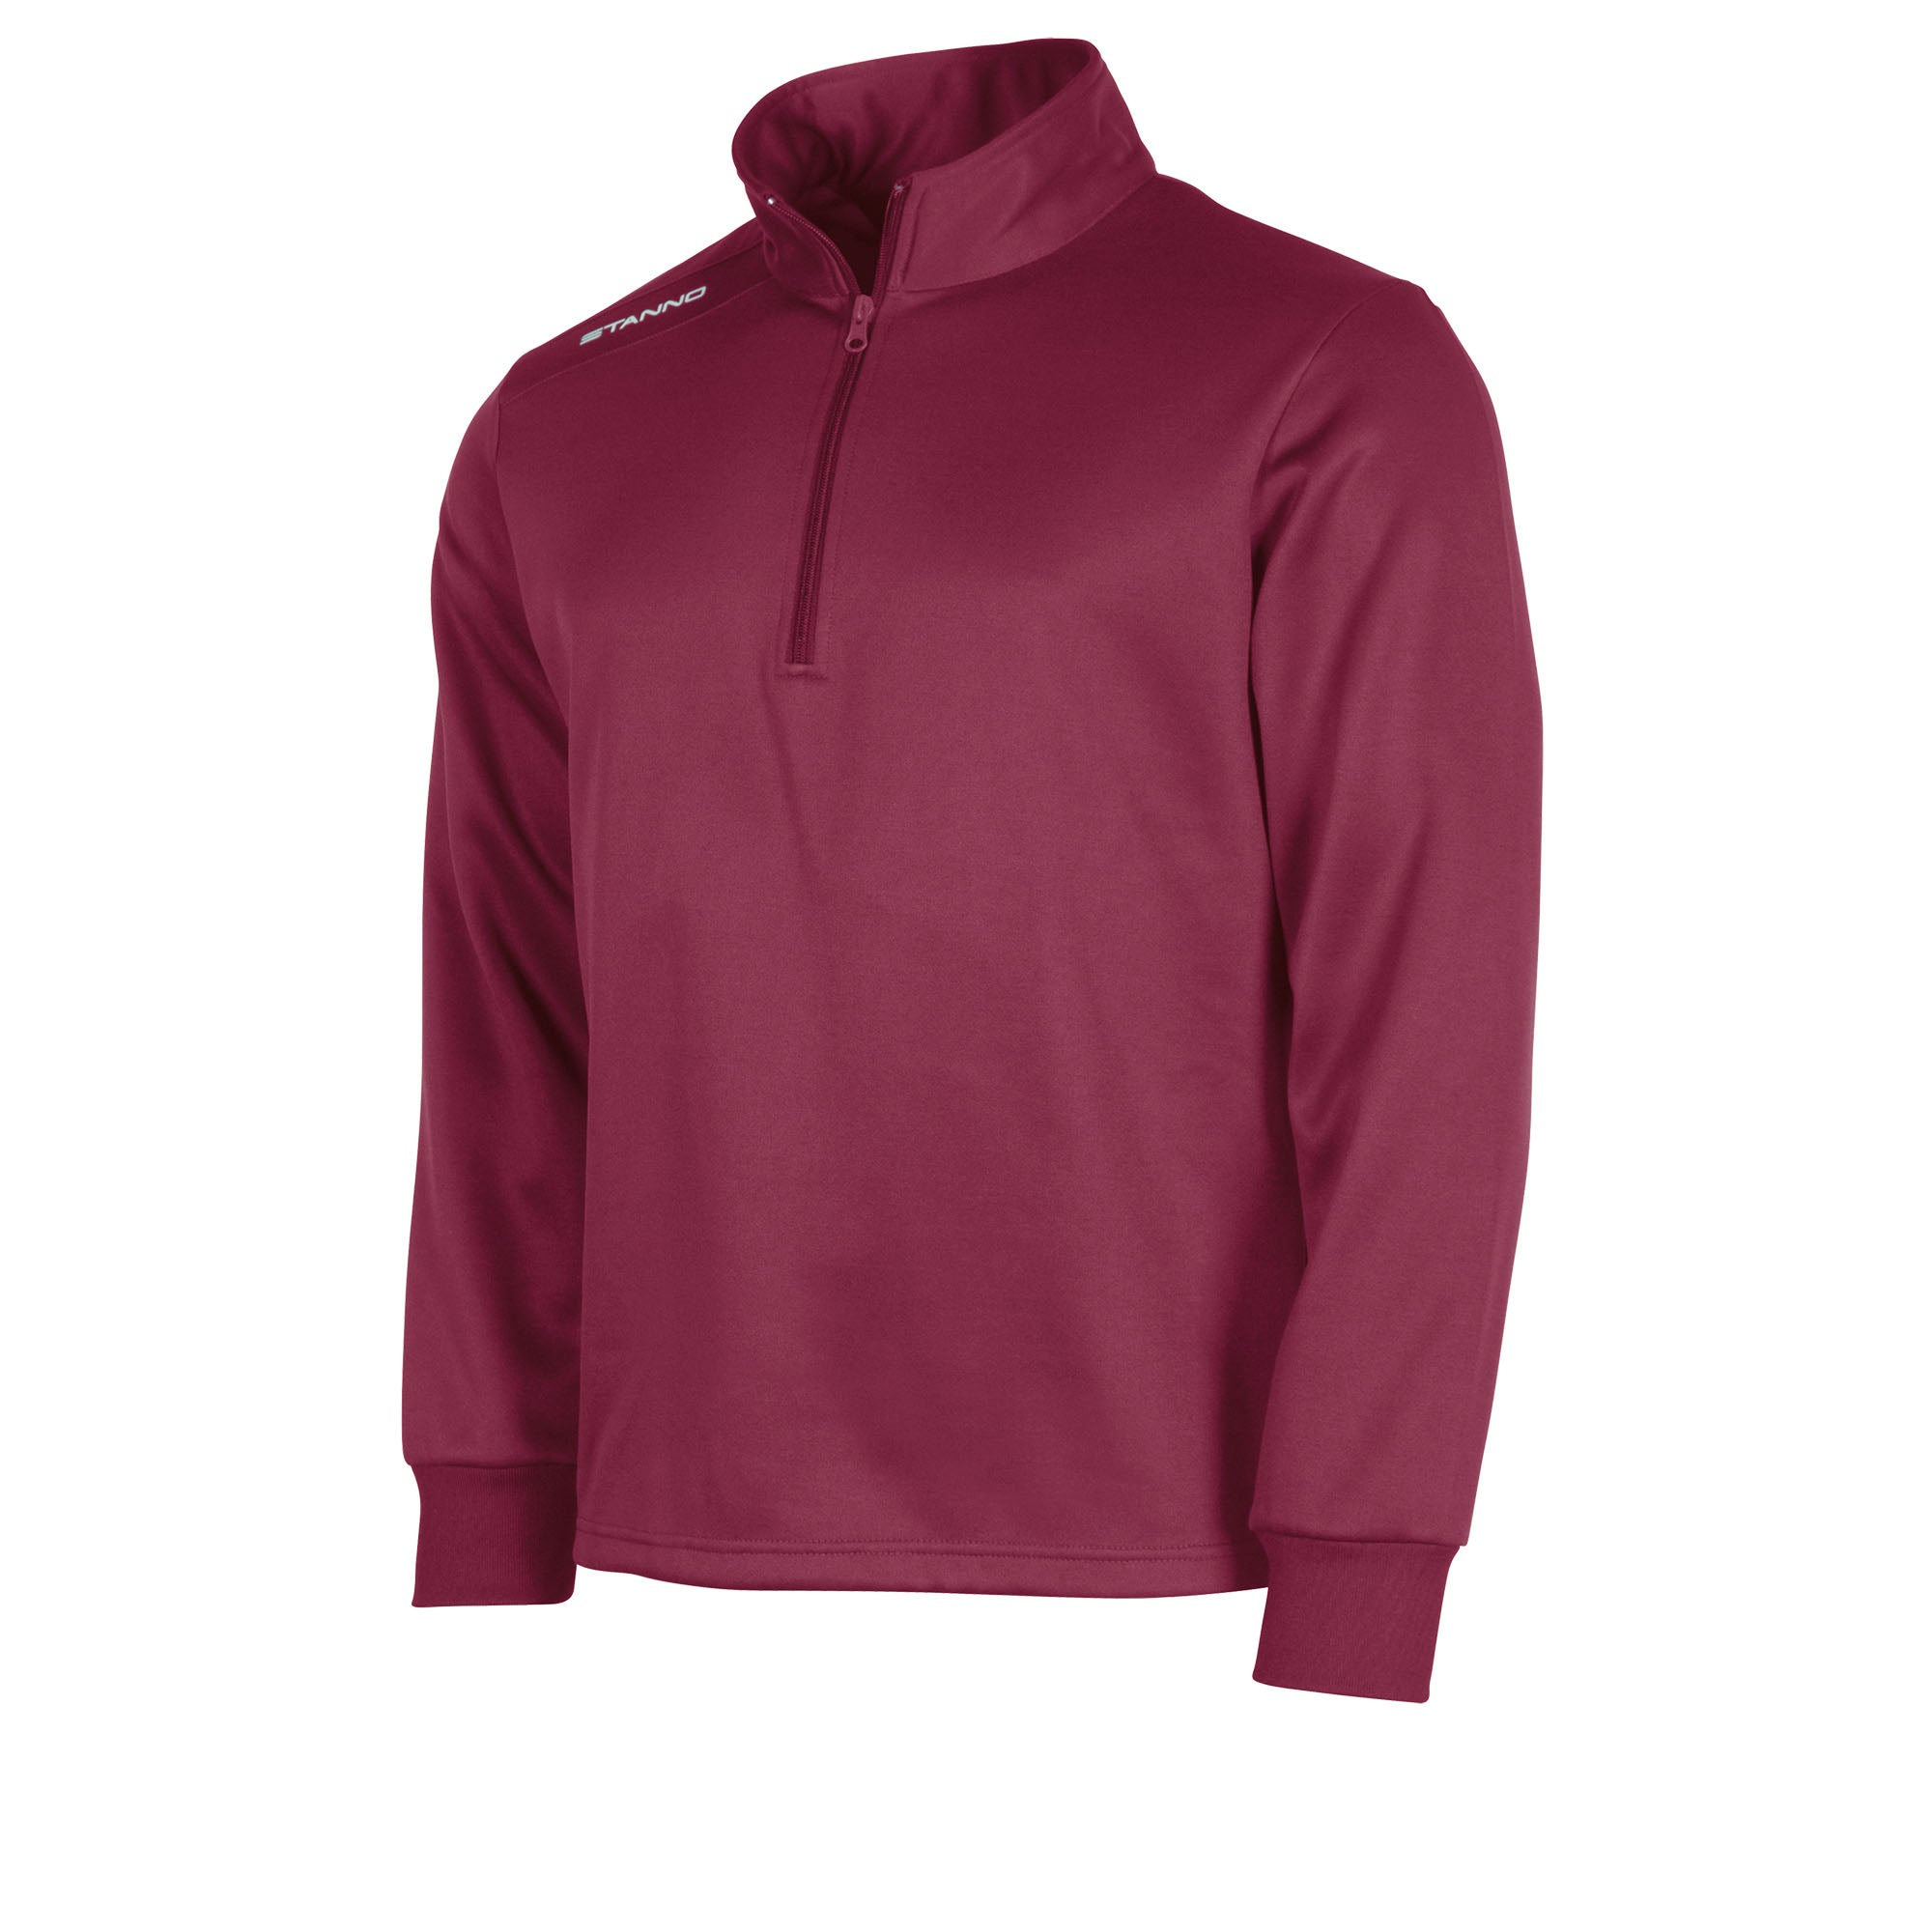 Front of maroon Stanno Field half zip top with white Stanno printed logo on right shoulder